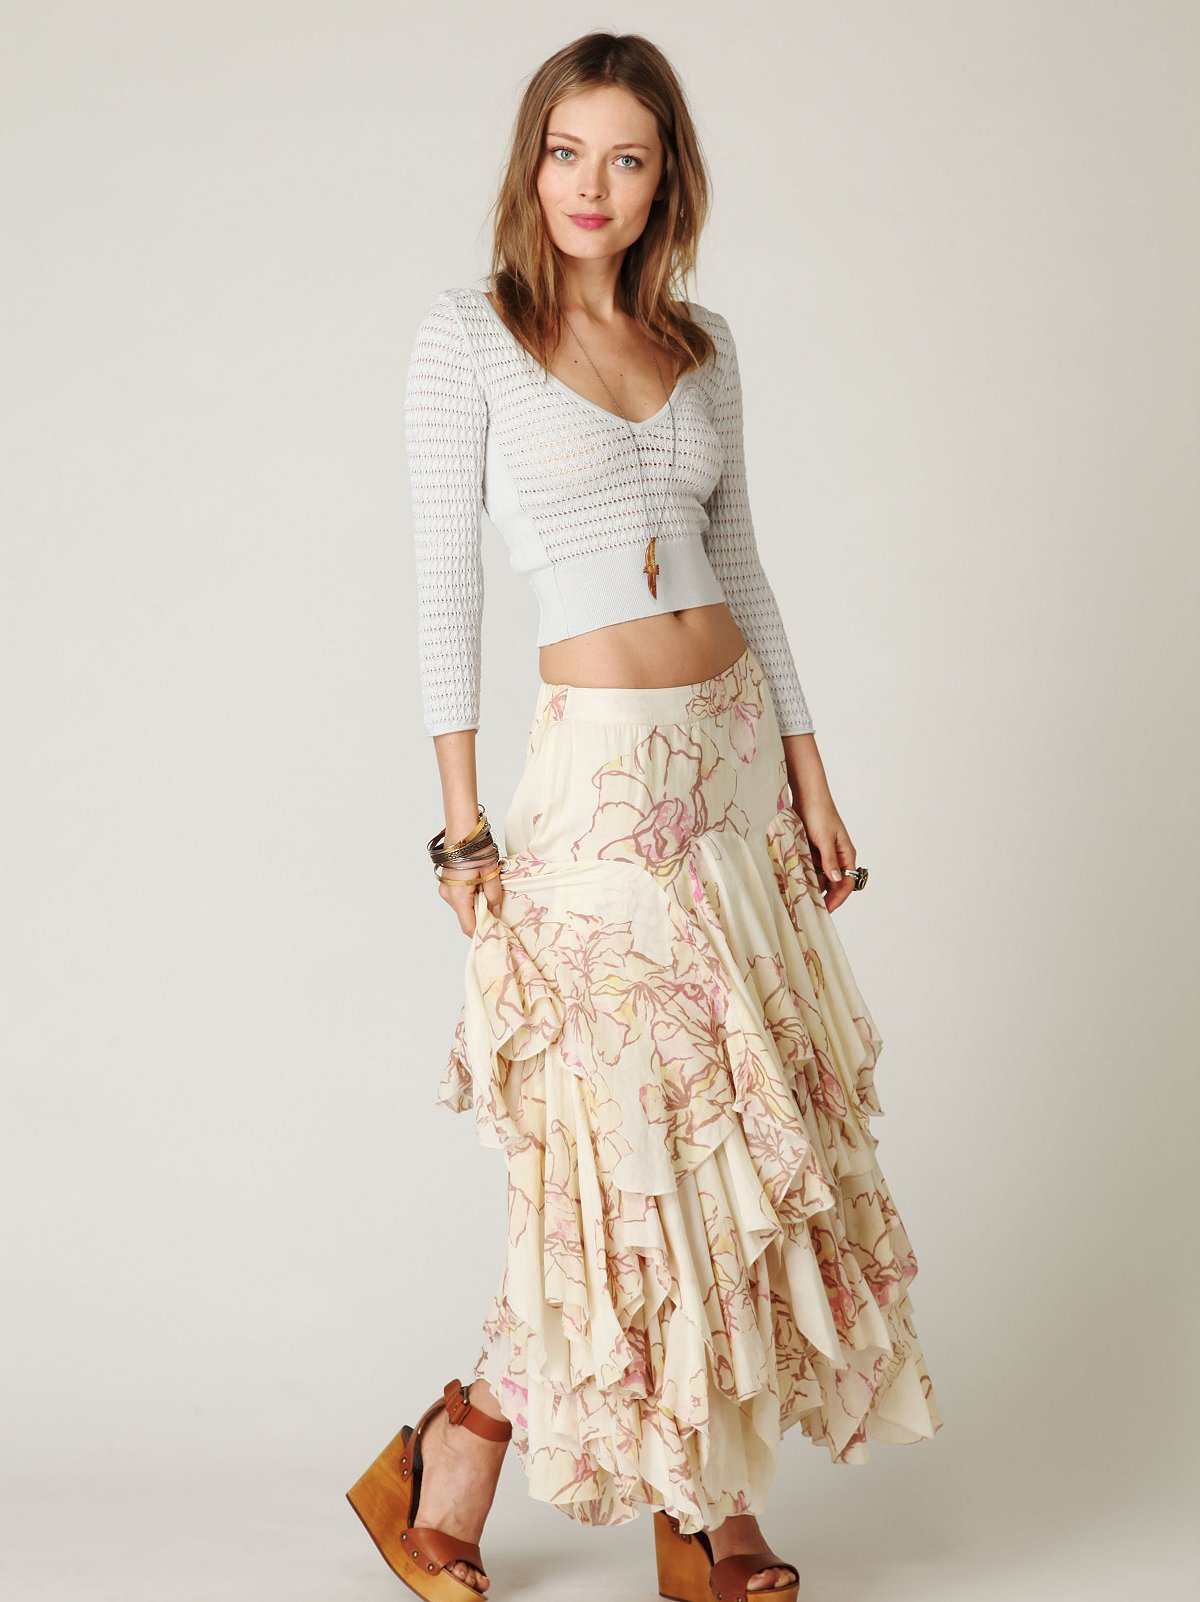 rounded godet maxi skirt at free clothing boutique